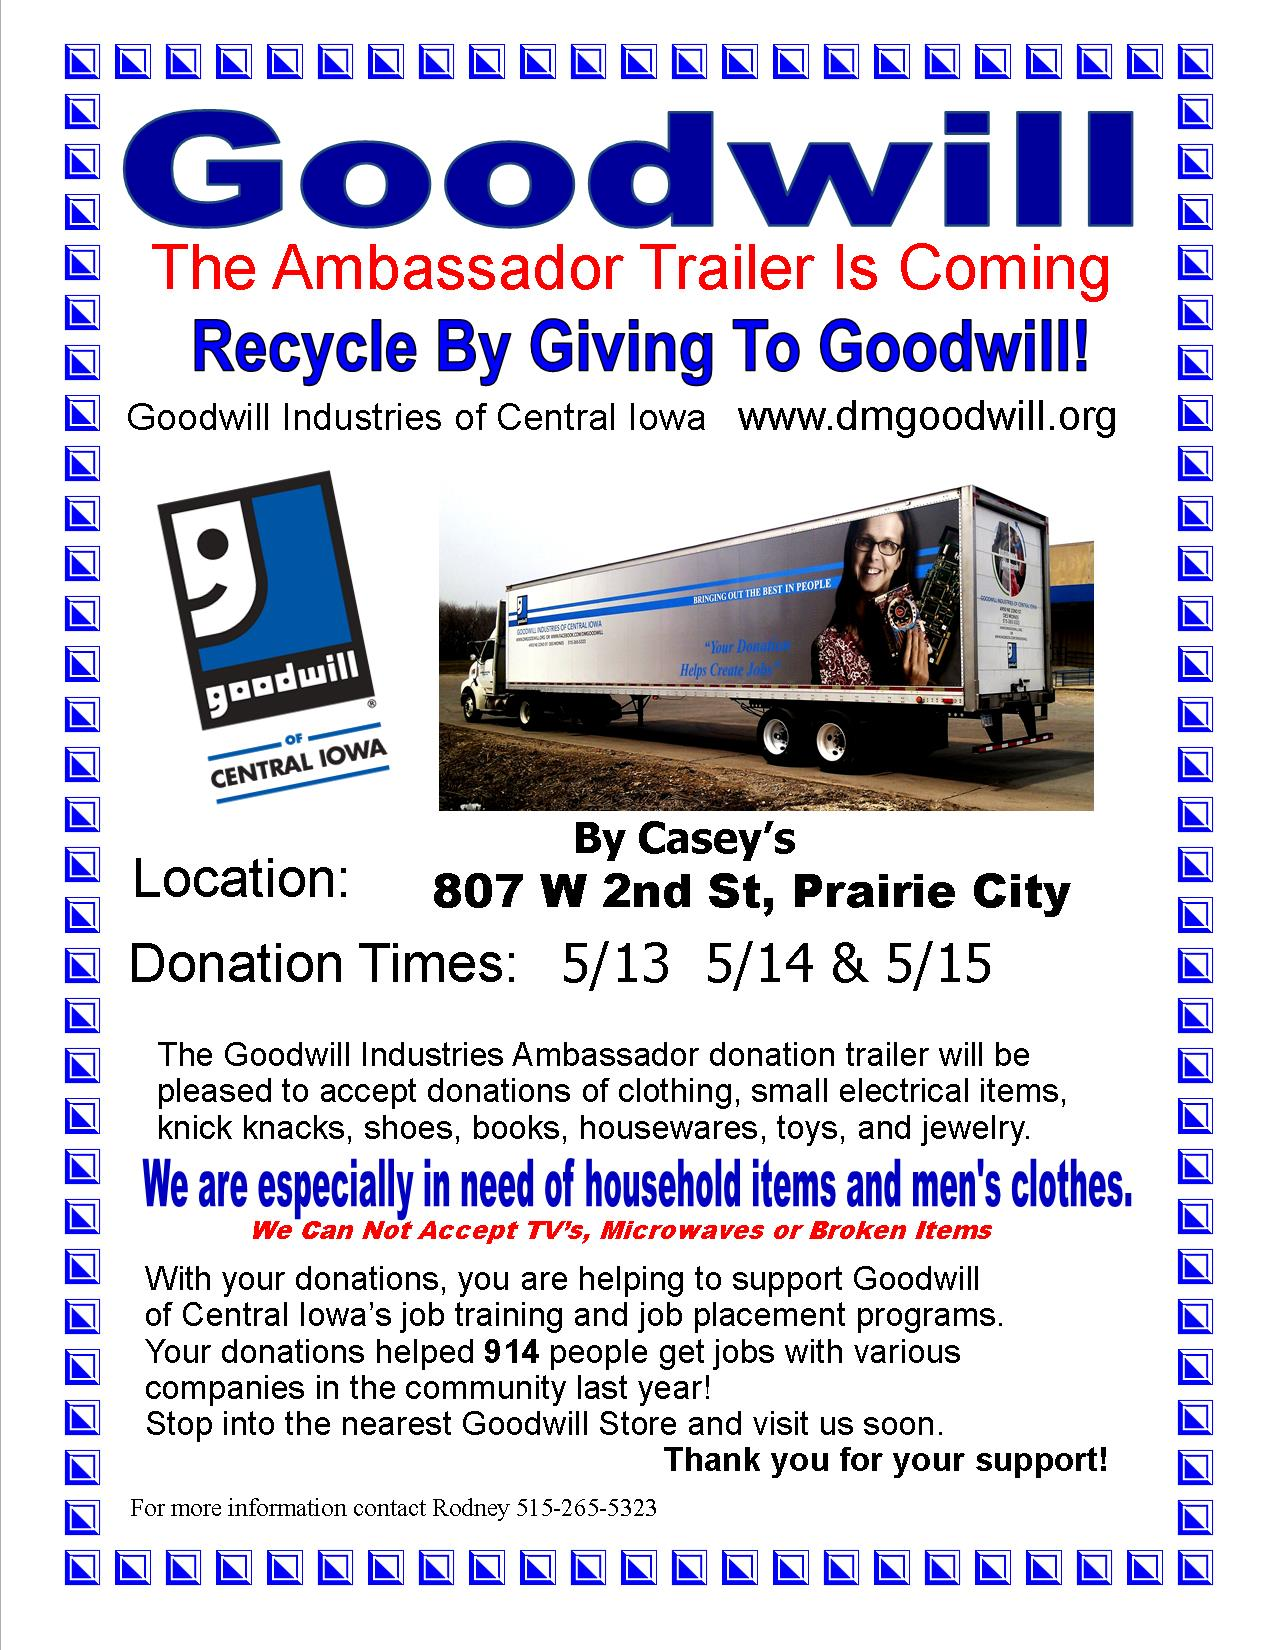 Goodwill Trailer in Prairie City